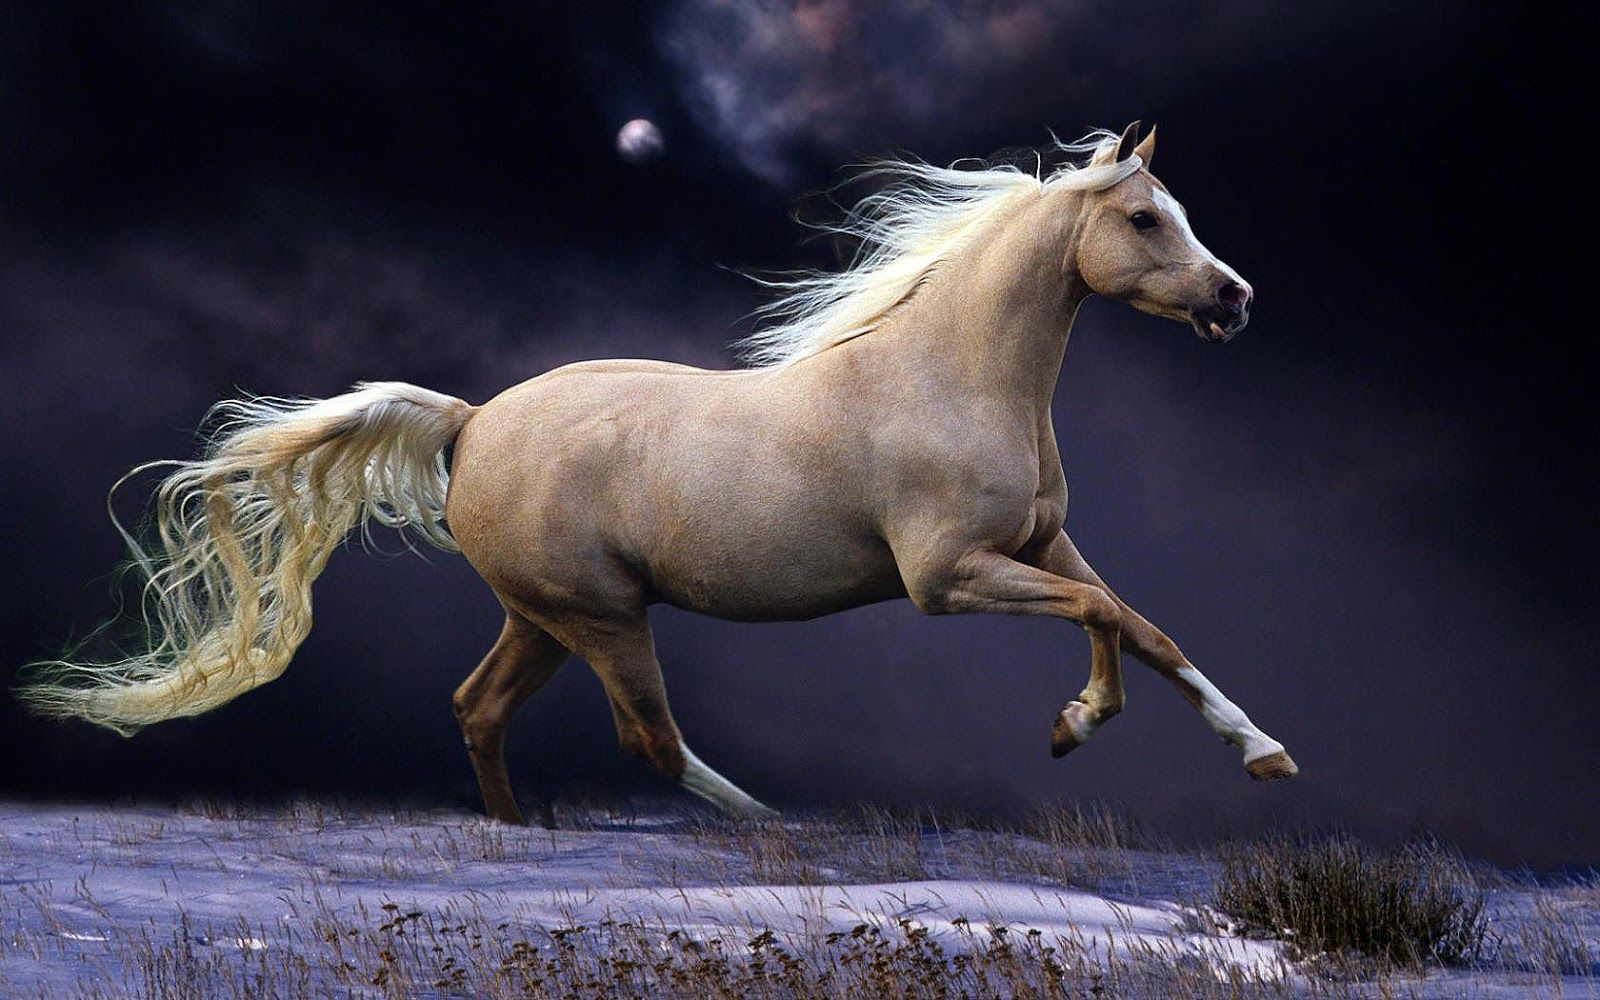 White running horses - photo#48